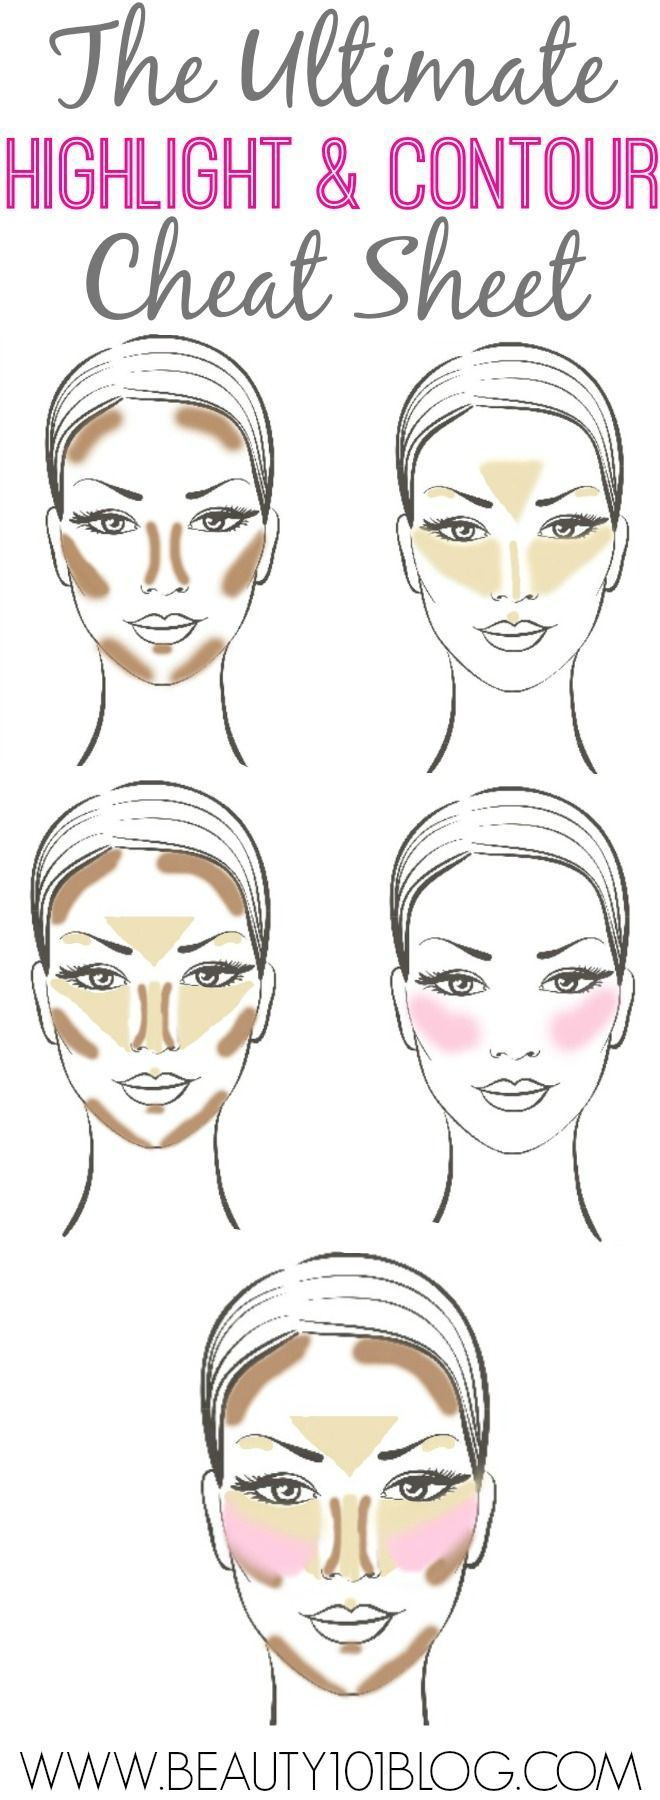 The EASIEST and most comprehensive contouring and highlighting guide on the internet! #beauty #makeup